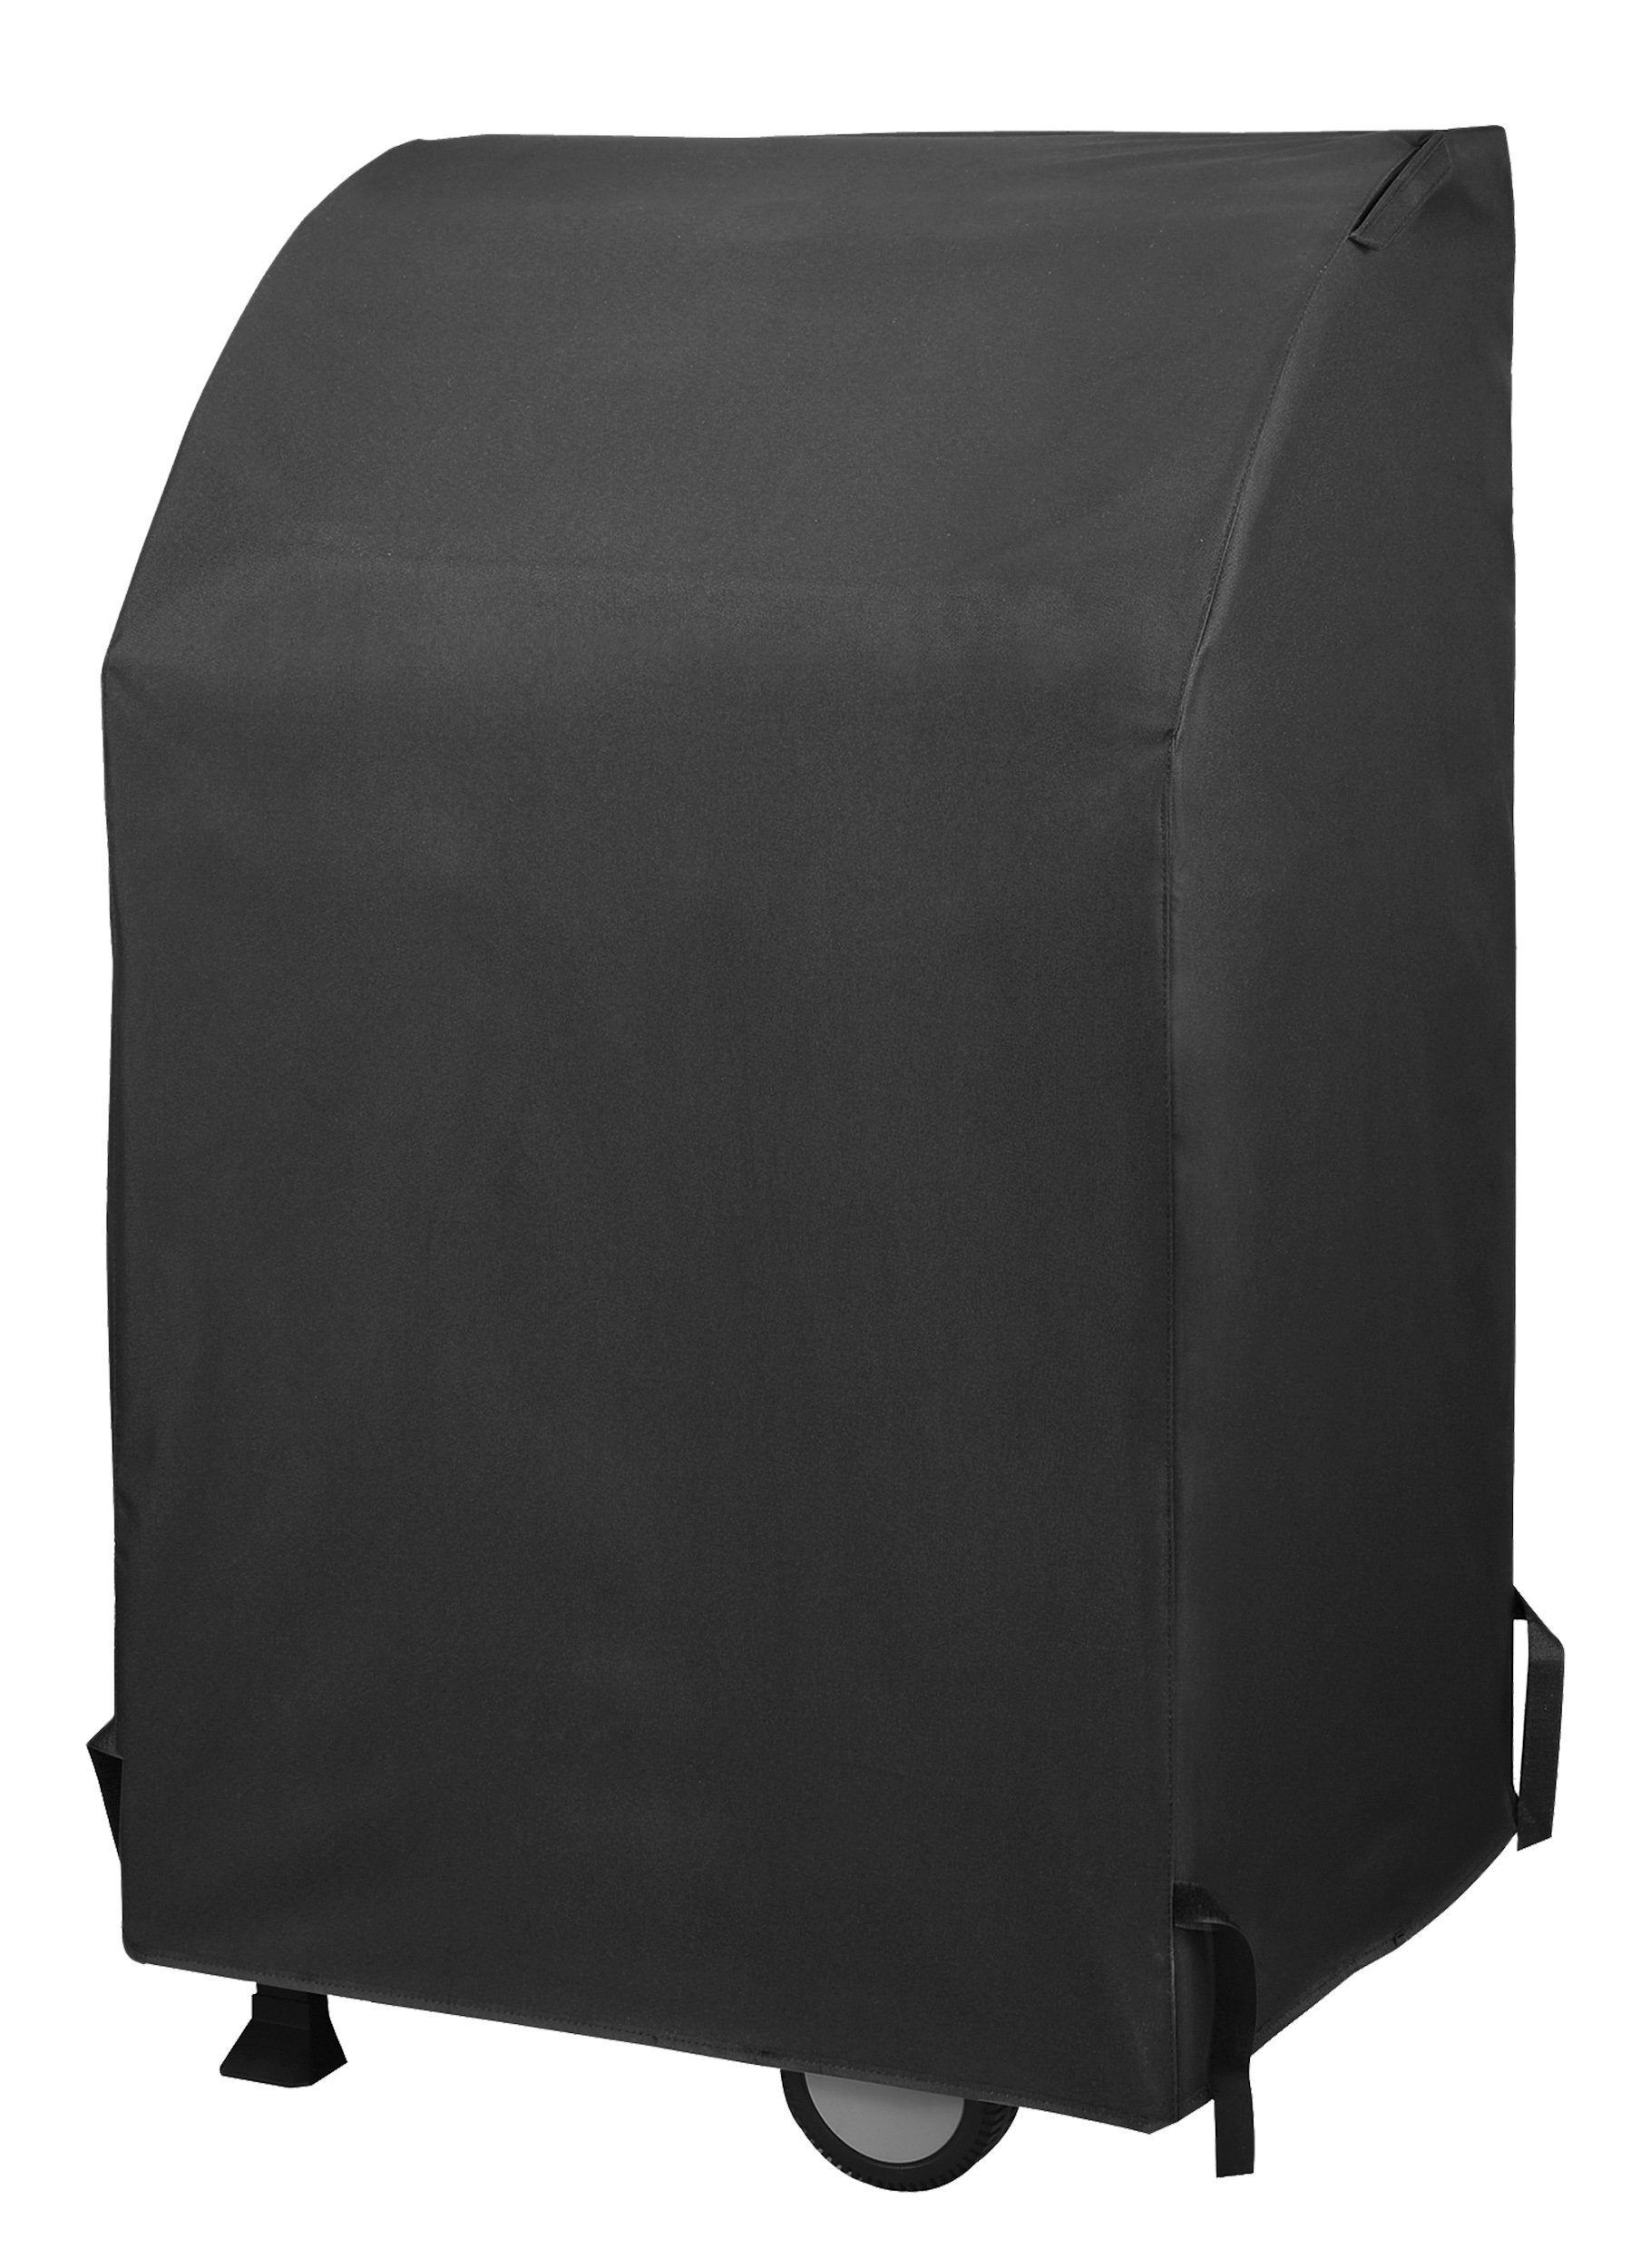 UNICOOK Heavy Duty Waterproof Two Burner Gas Grill Cover, 32-Inch Width BBQ Cover, Small Space Grill Cover, Fade Resistant, Fit Grills with Collapsed Side Tables for Weber Char-Broil and More by UNICOOK